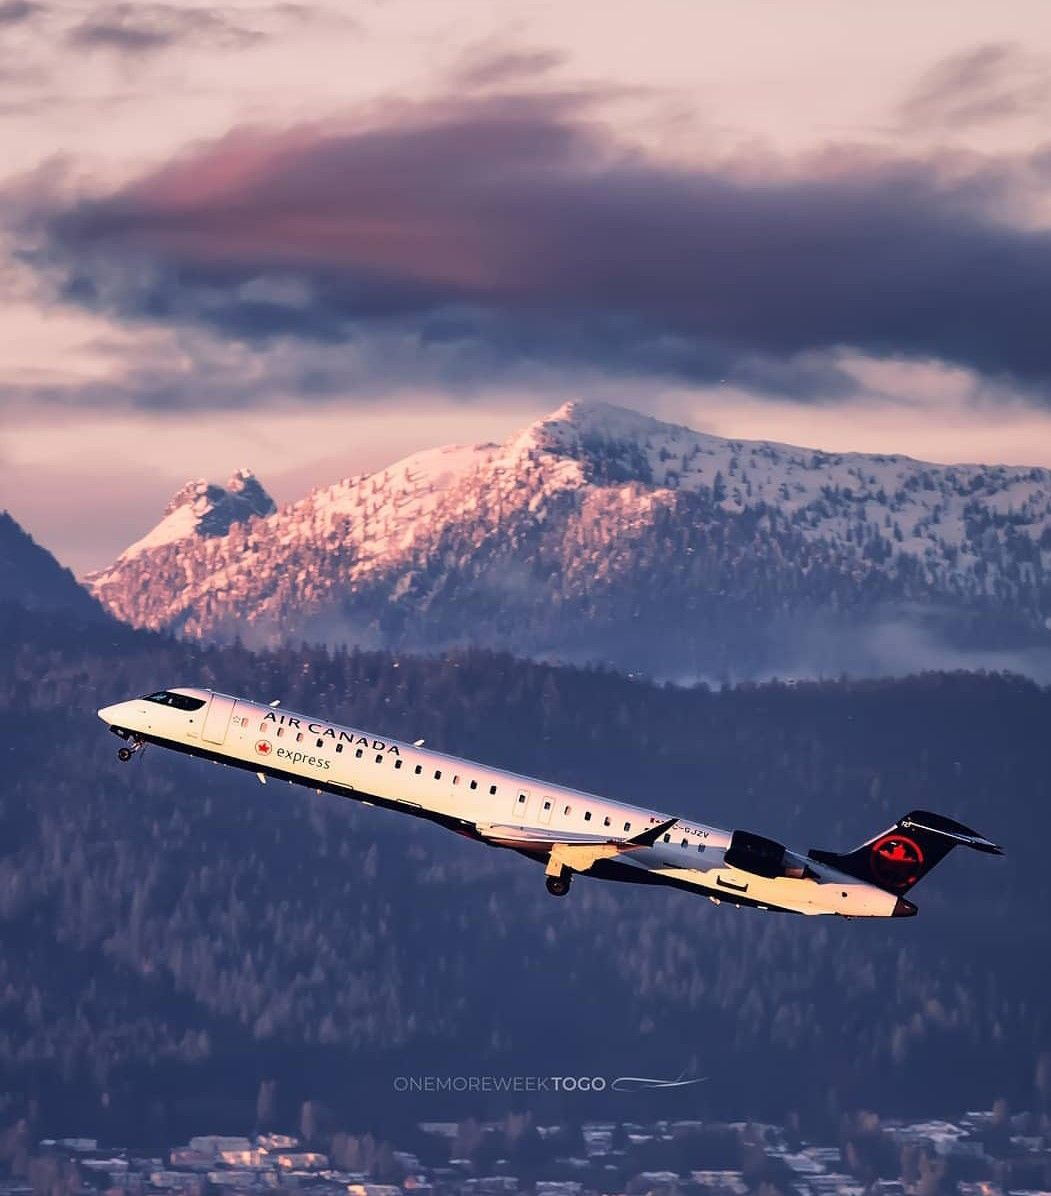 Air Canada beautiful capture (Dengan gambar)